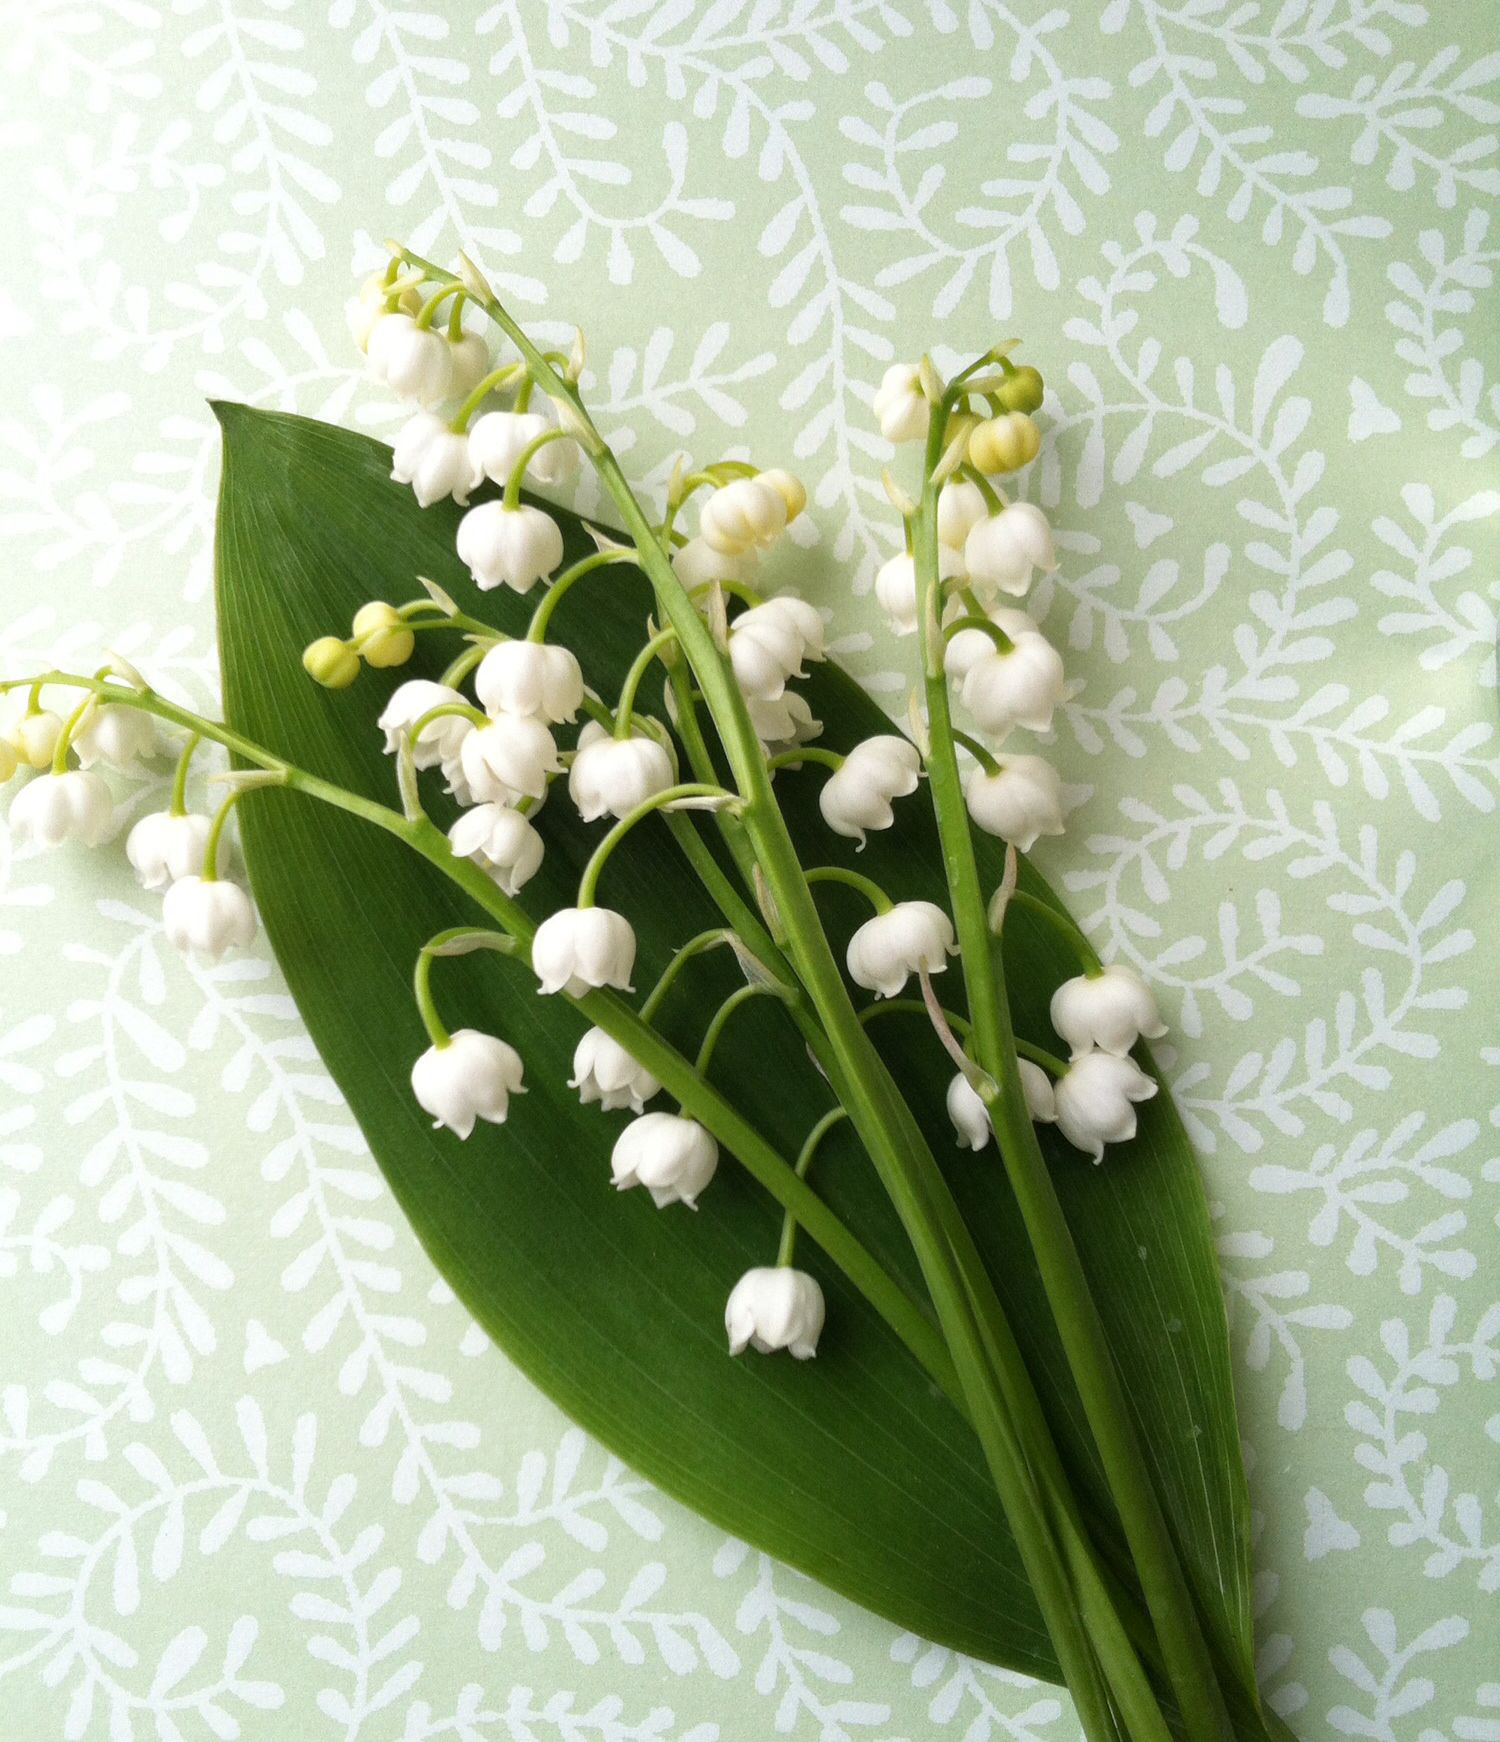 Liljekonval. Foto Pernilleshave Lily of the valley